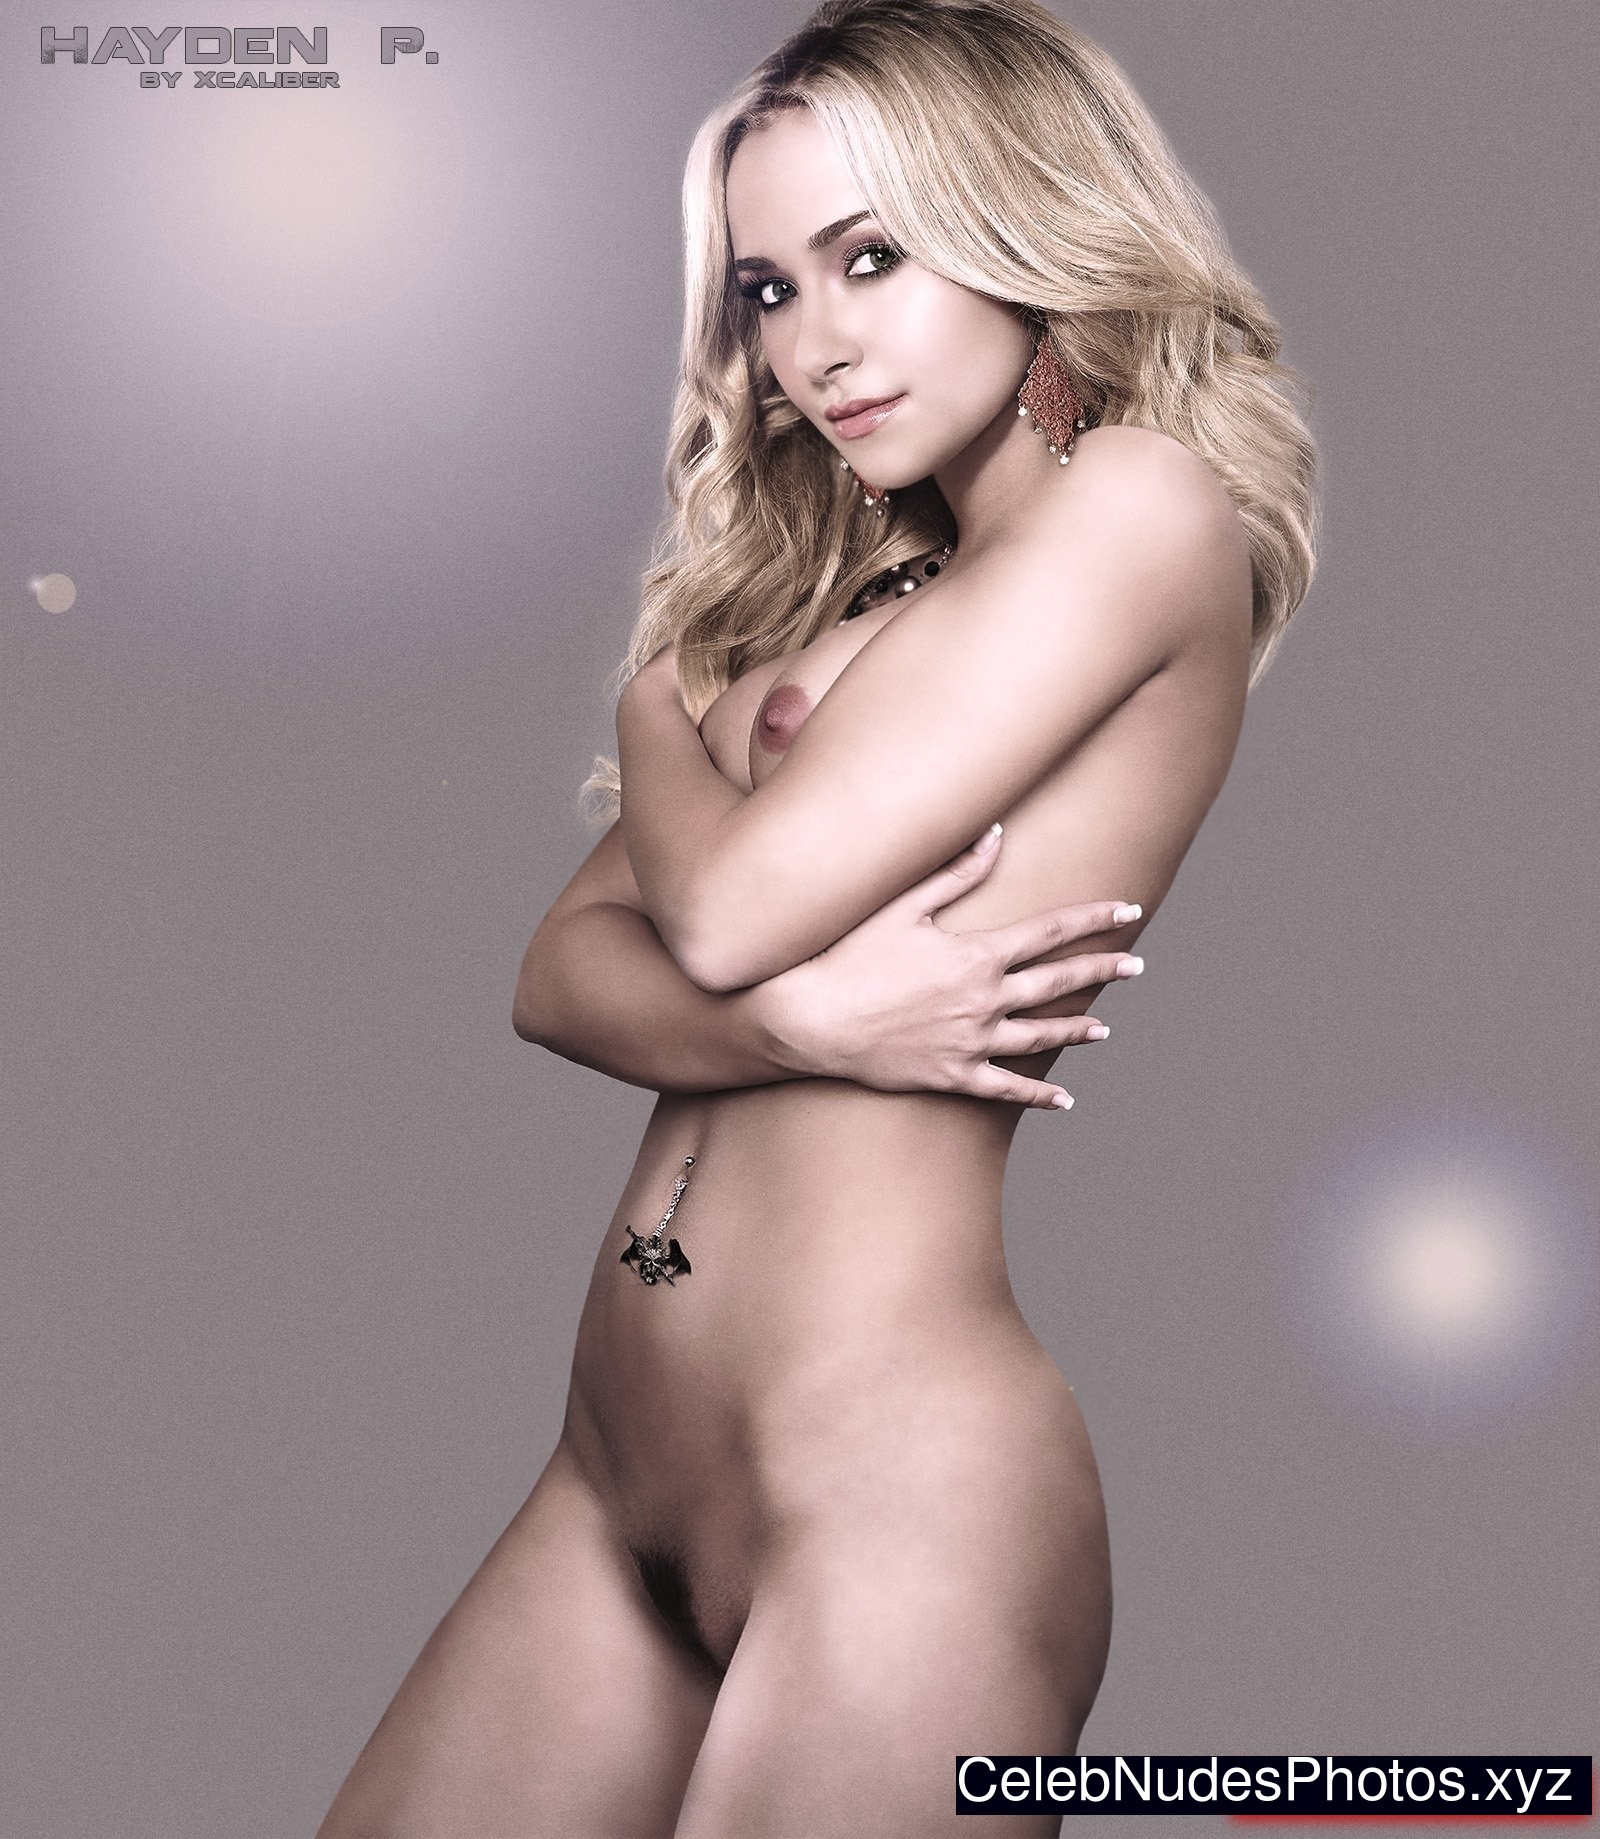 Apologise, Hayden panettiere nude celebrity question Excuse